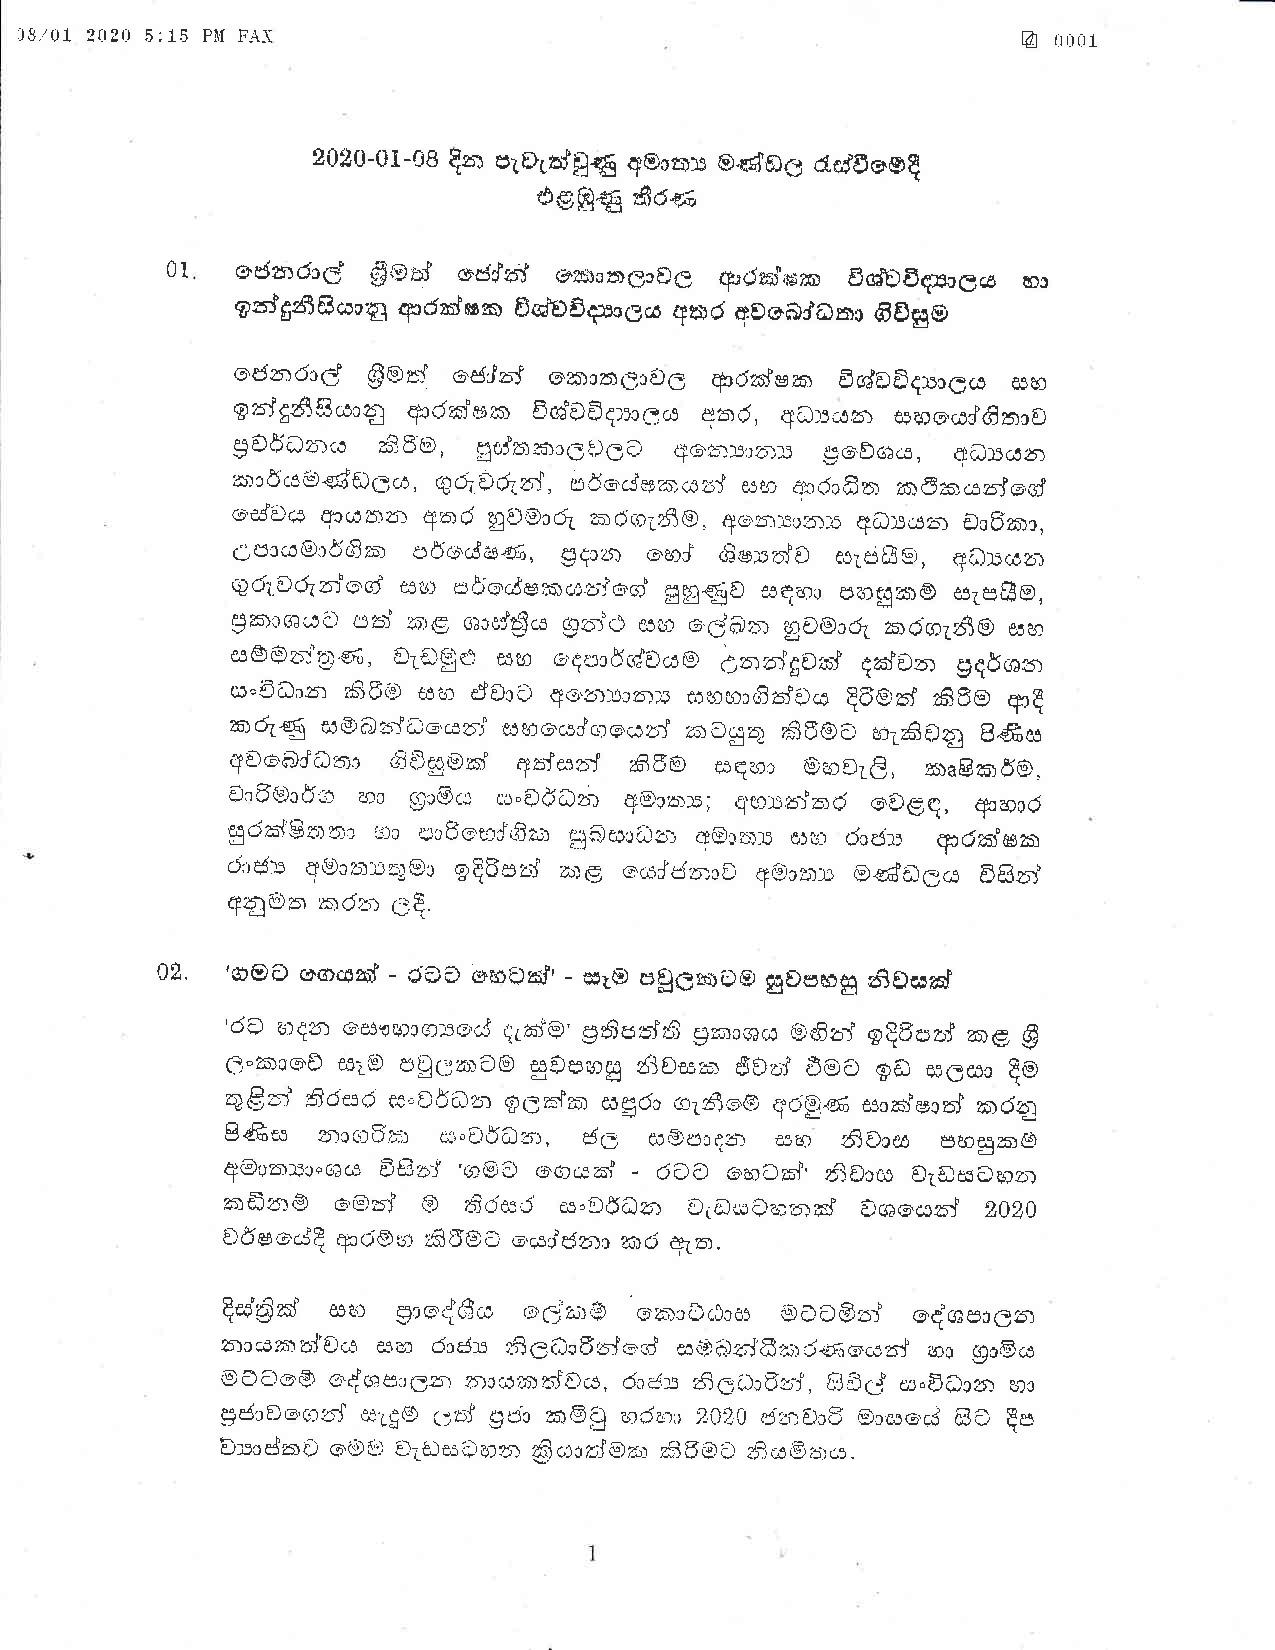 Cabinet Decision on 08.01.2020 page 001